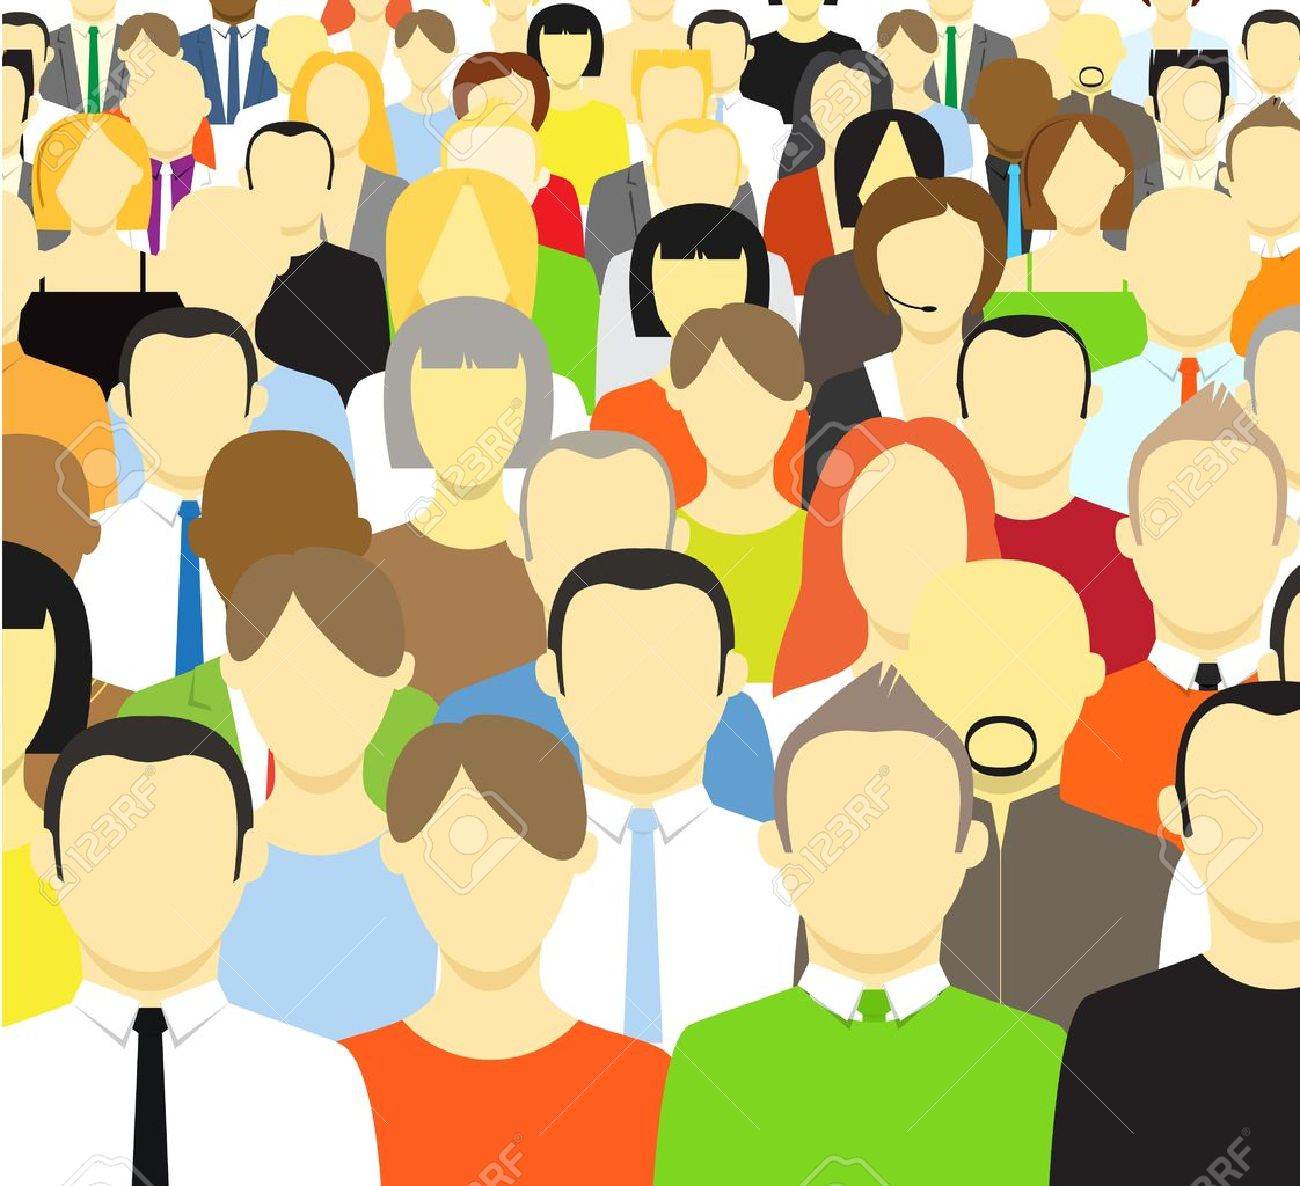 Free Clipart Crowd Of People.